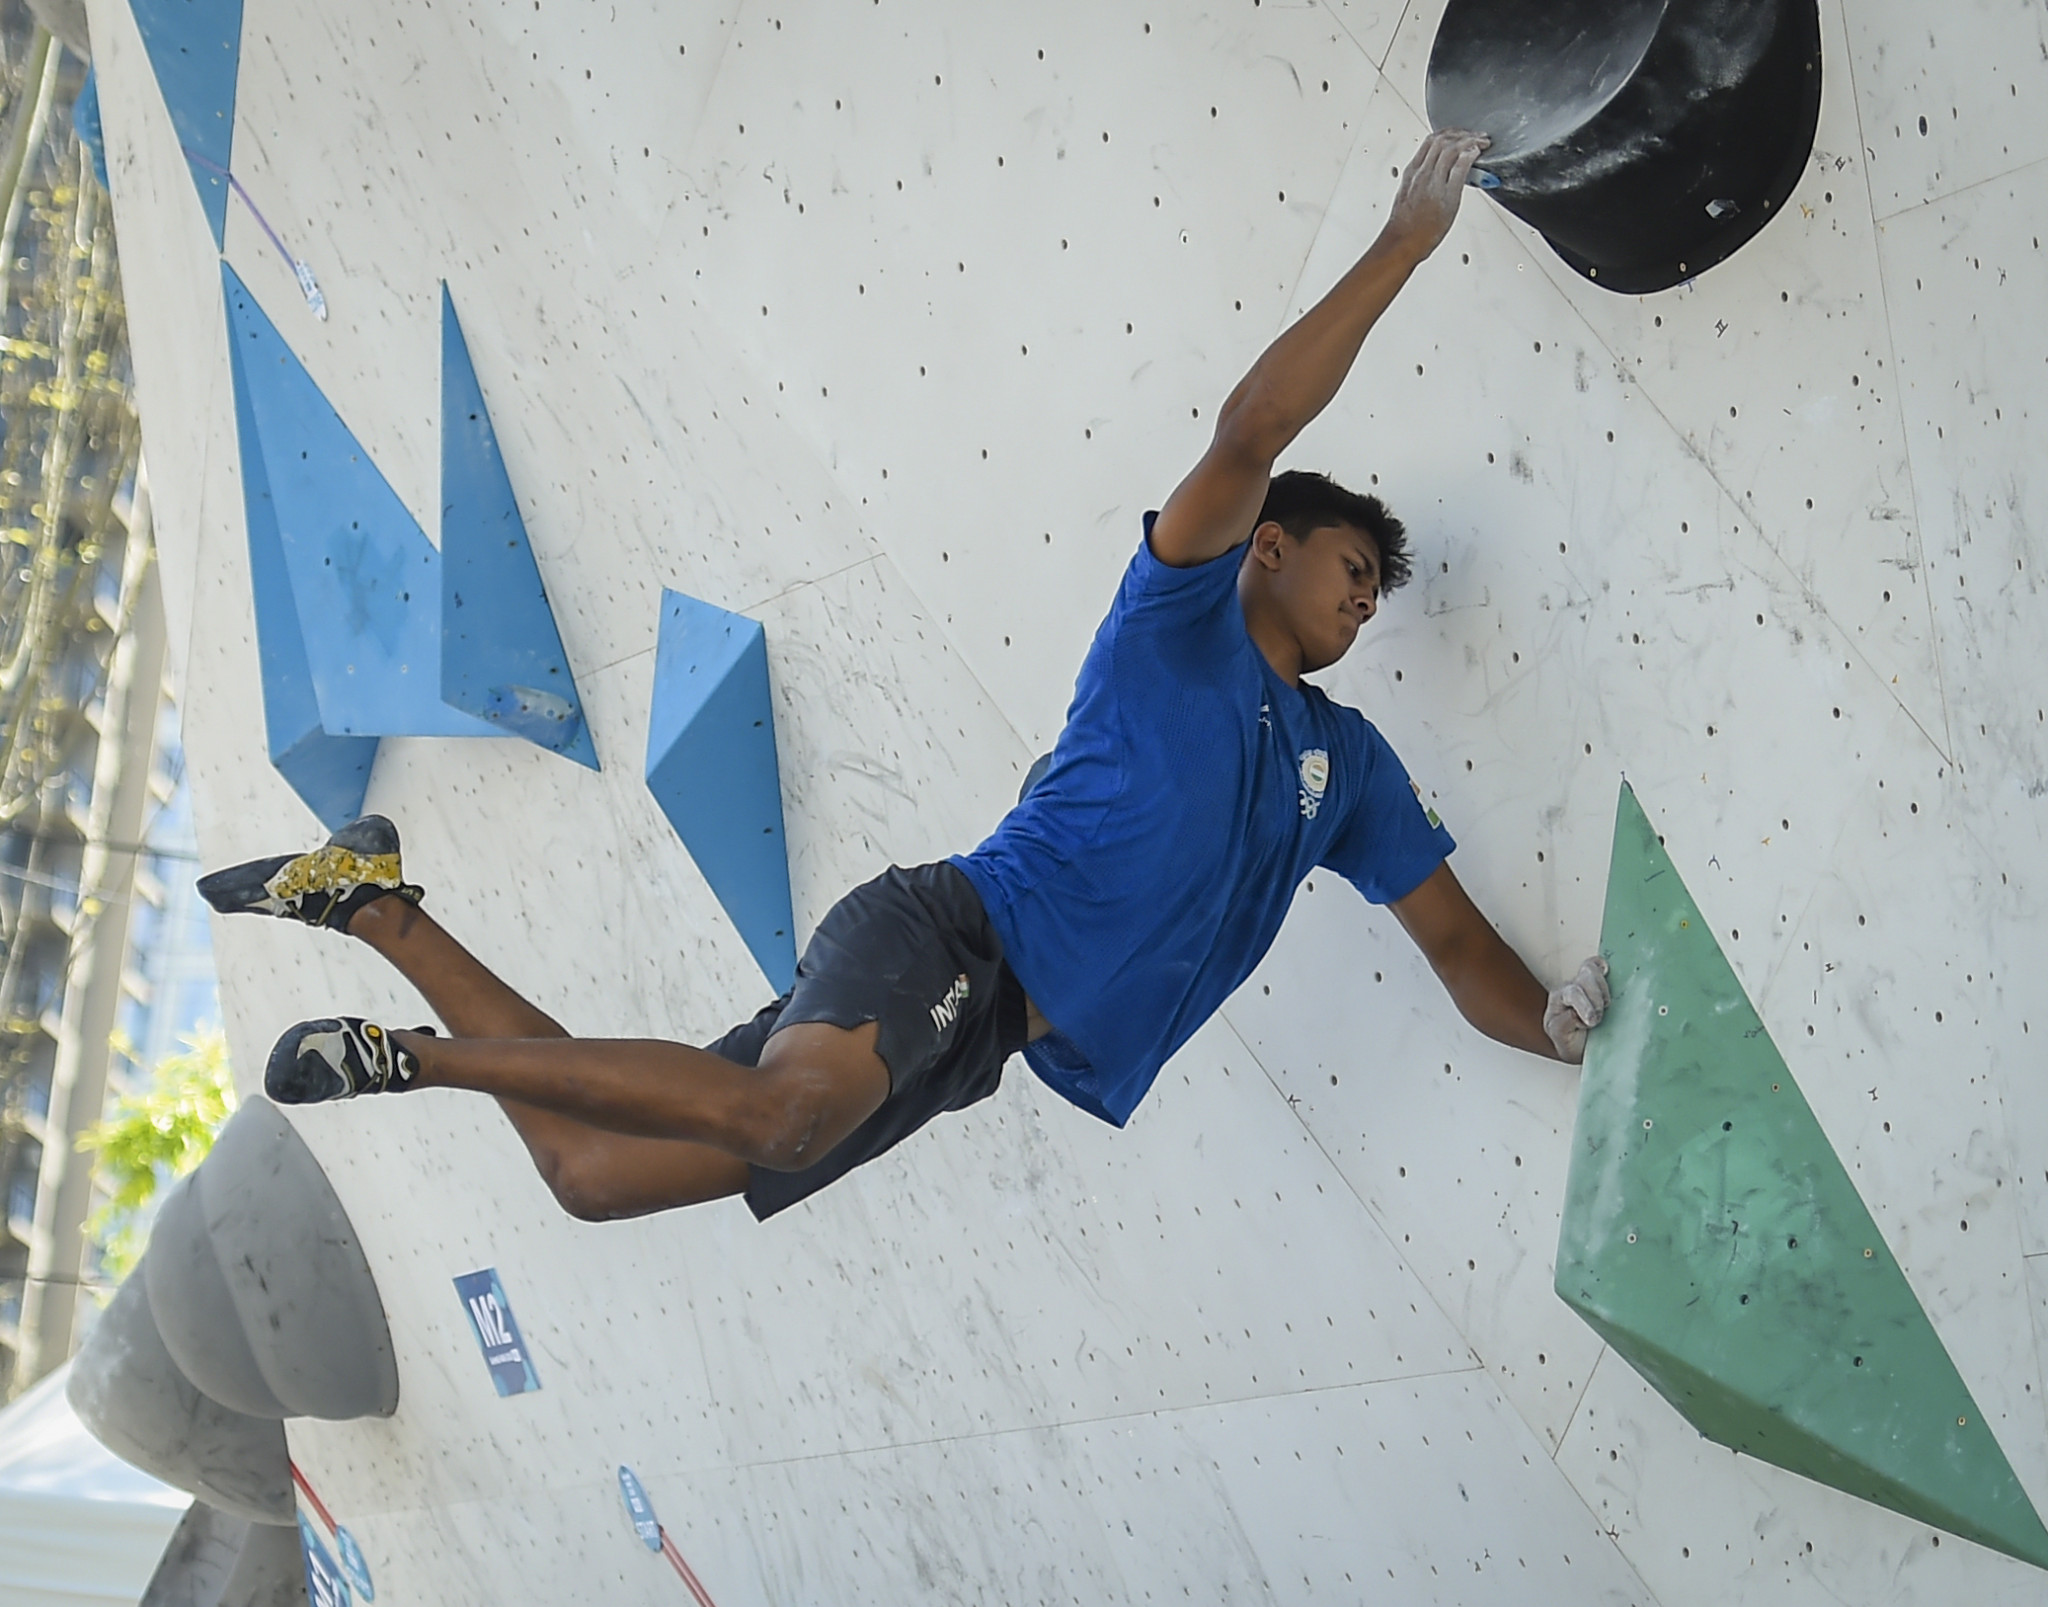 Sport climbing will feature at a second consecutive Olympic Games at Paris 2024 ©Getty Images